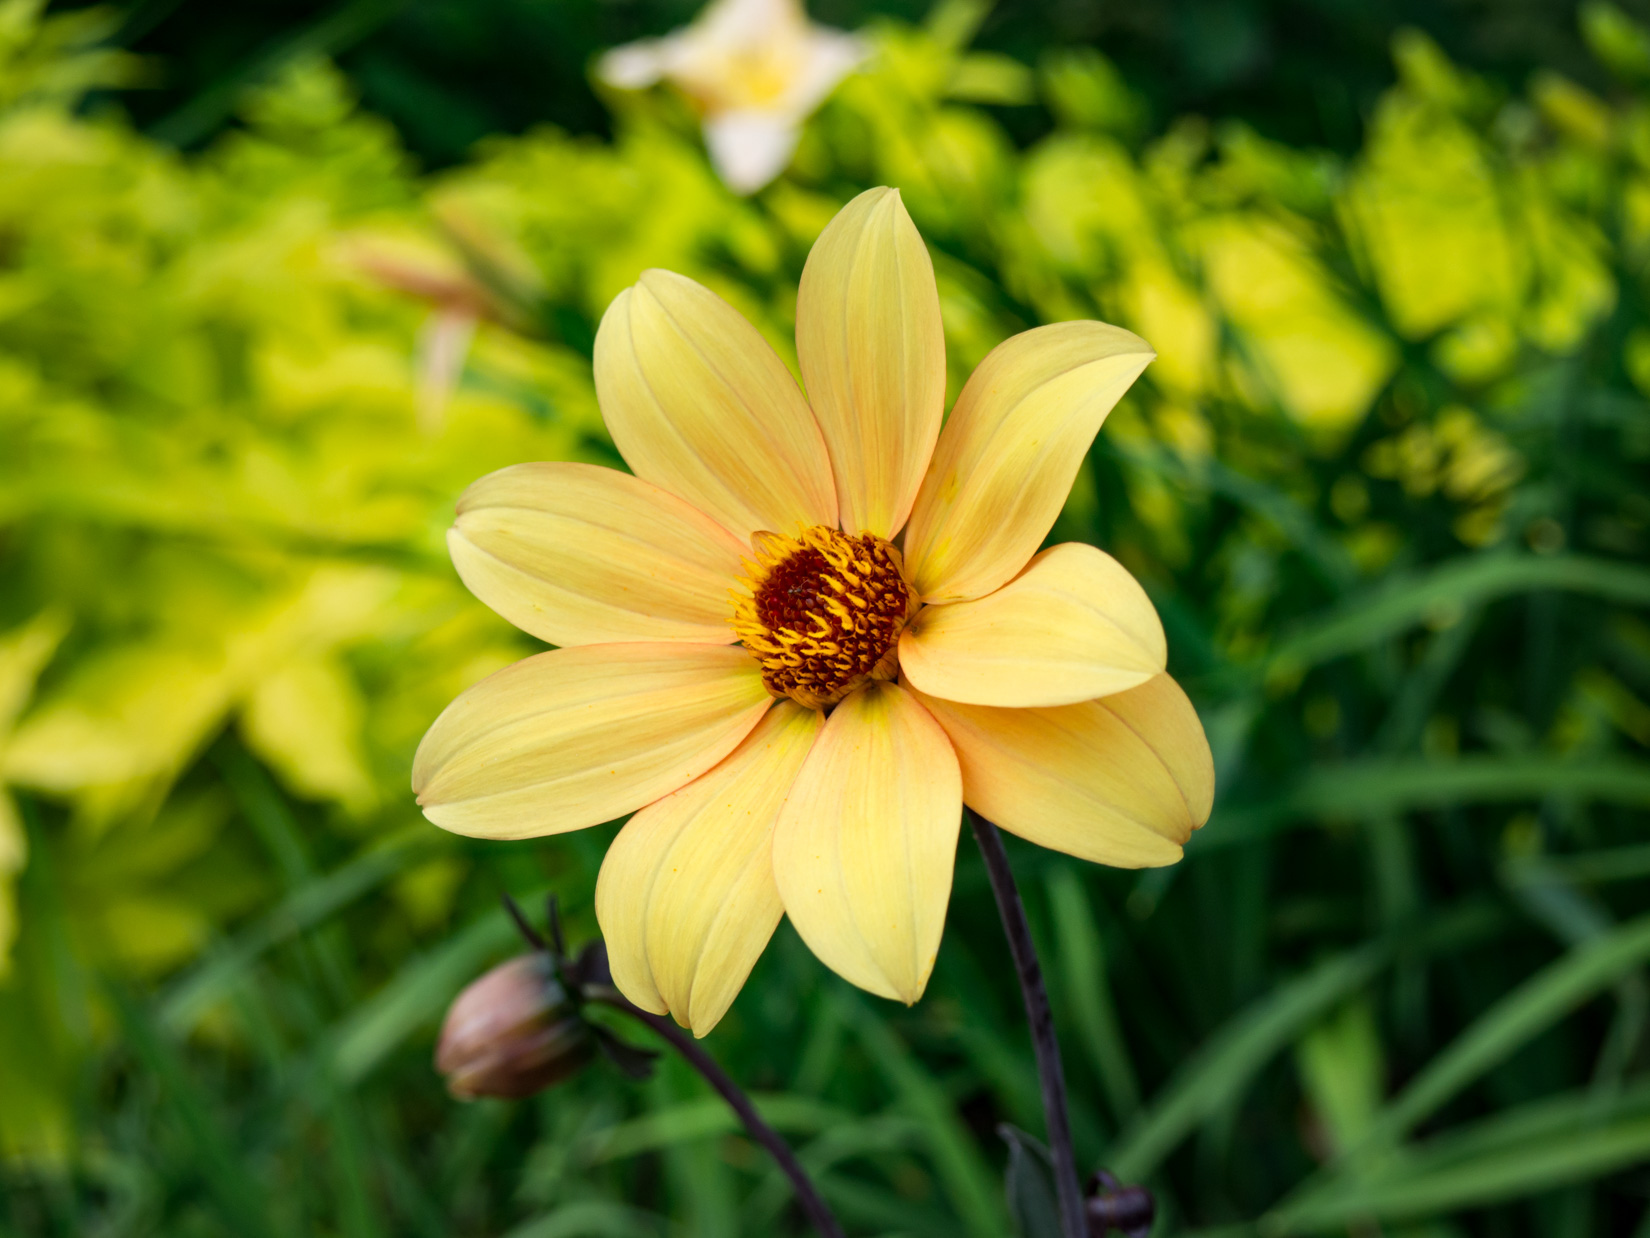 Yellow Flower in Garden